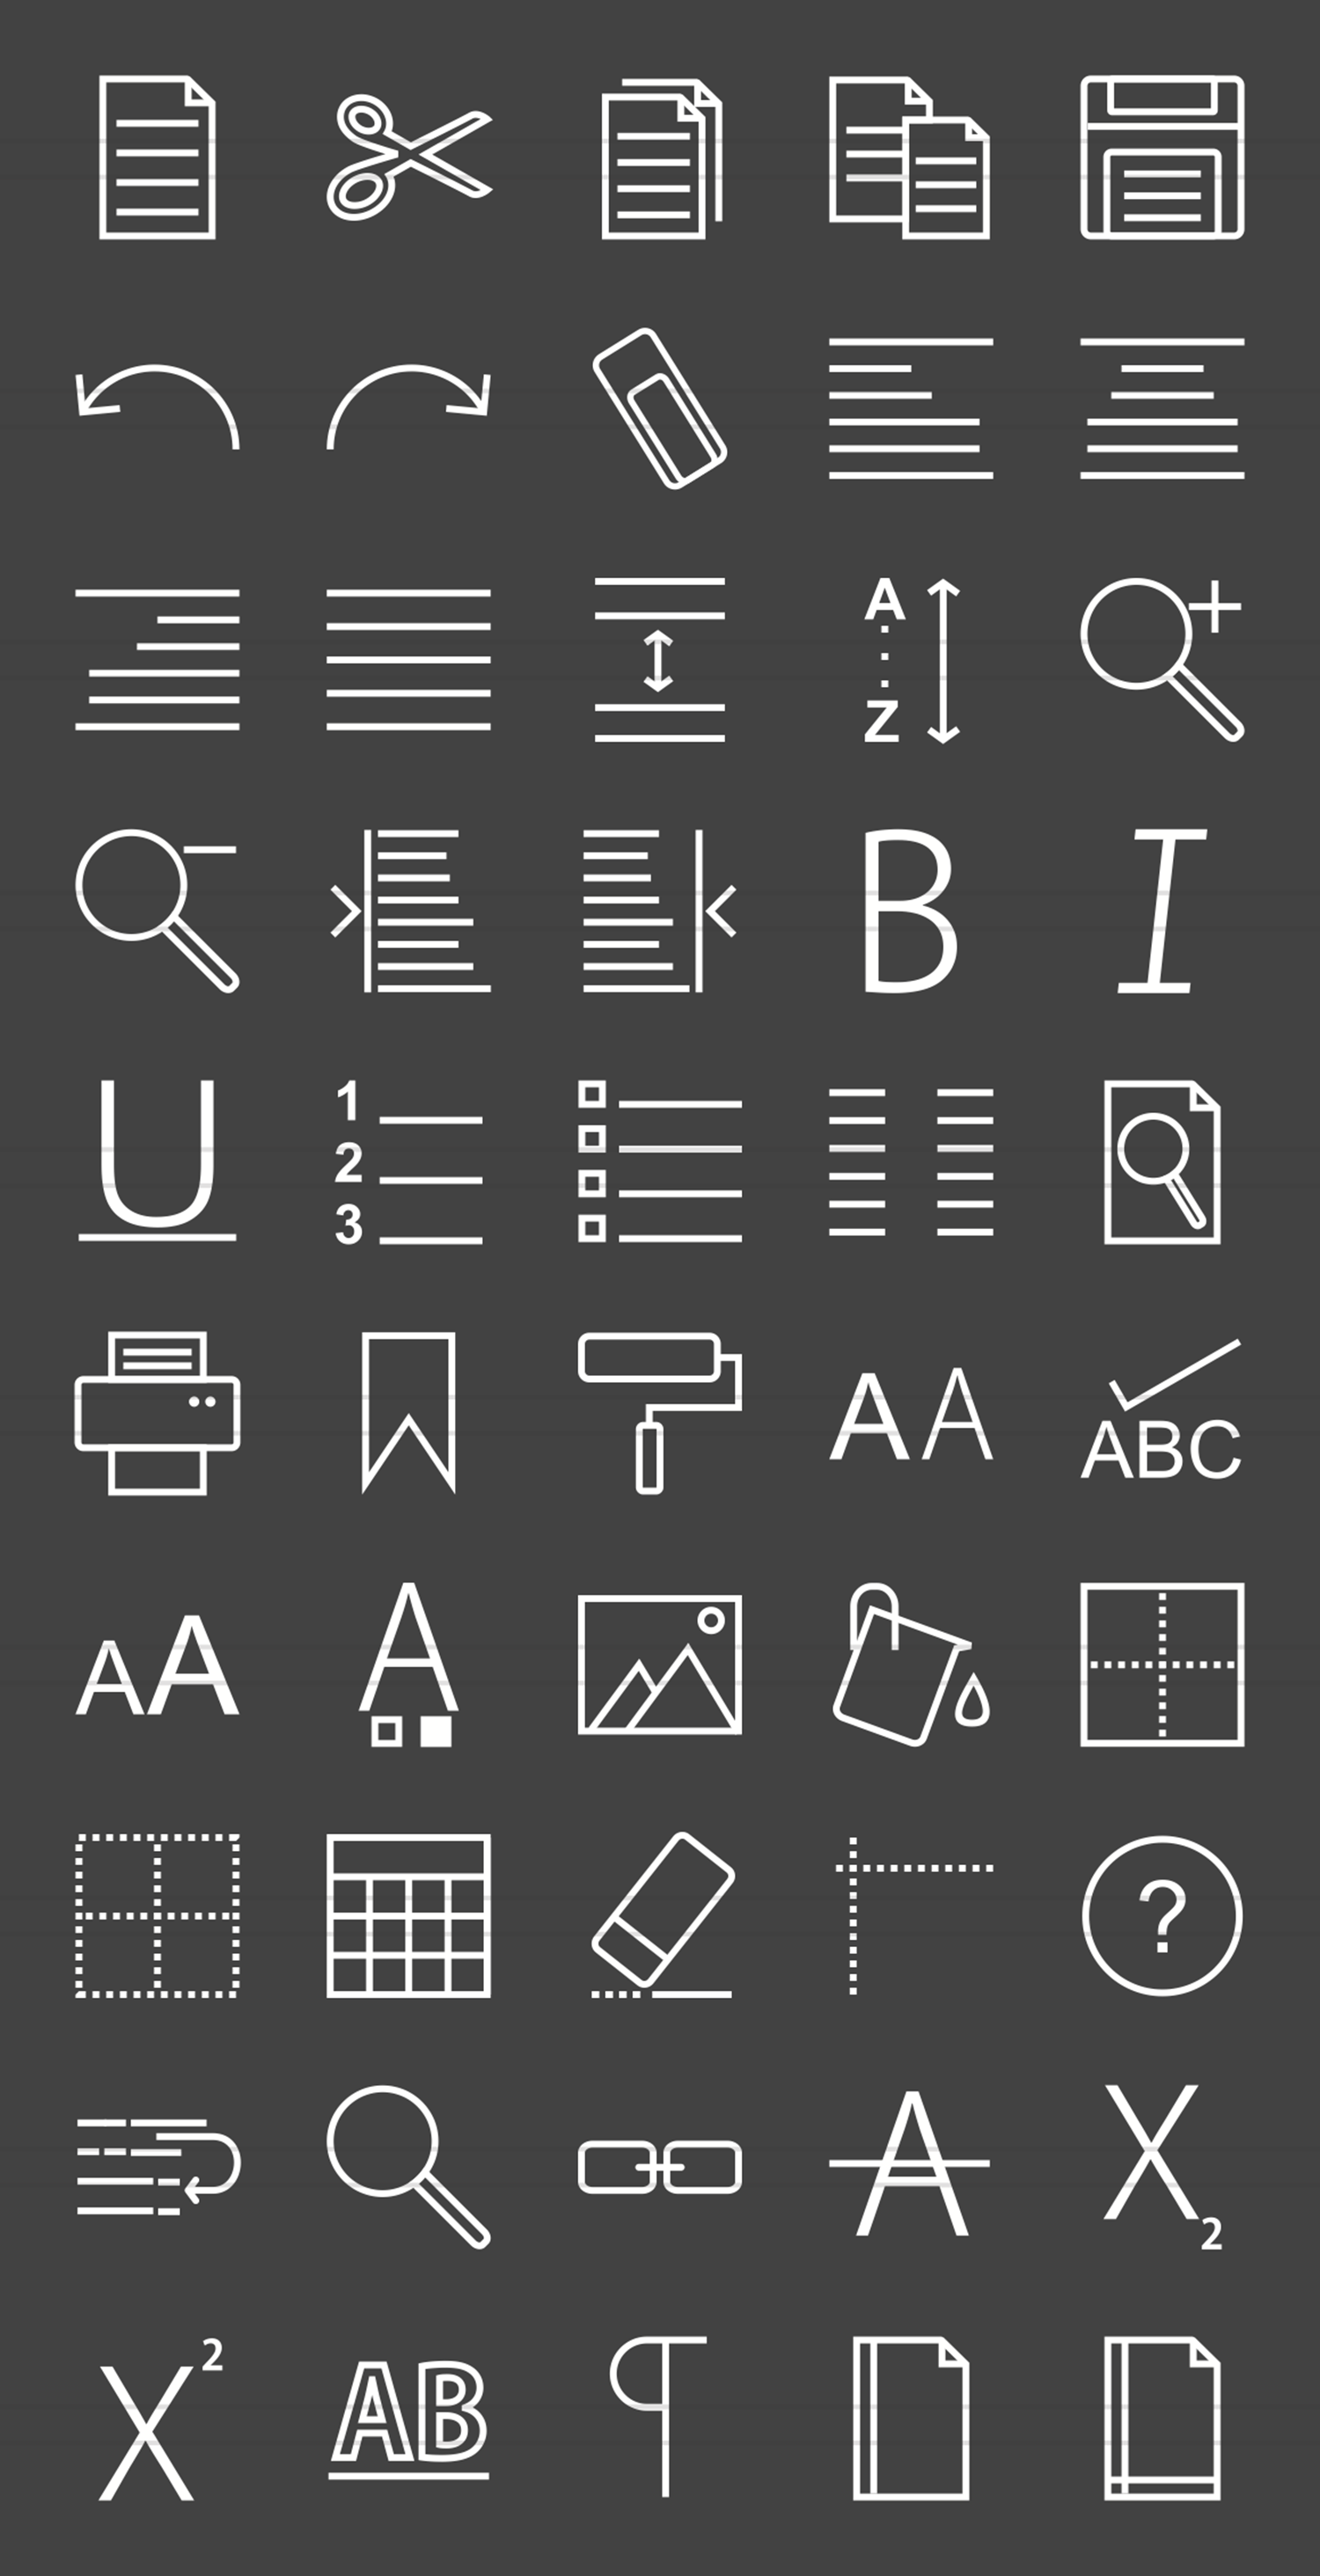 50 Text Editing Line Inverted Icons example image 2